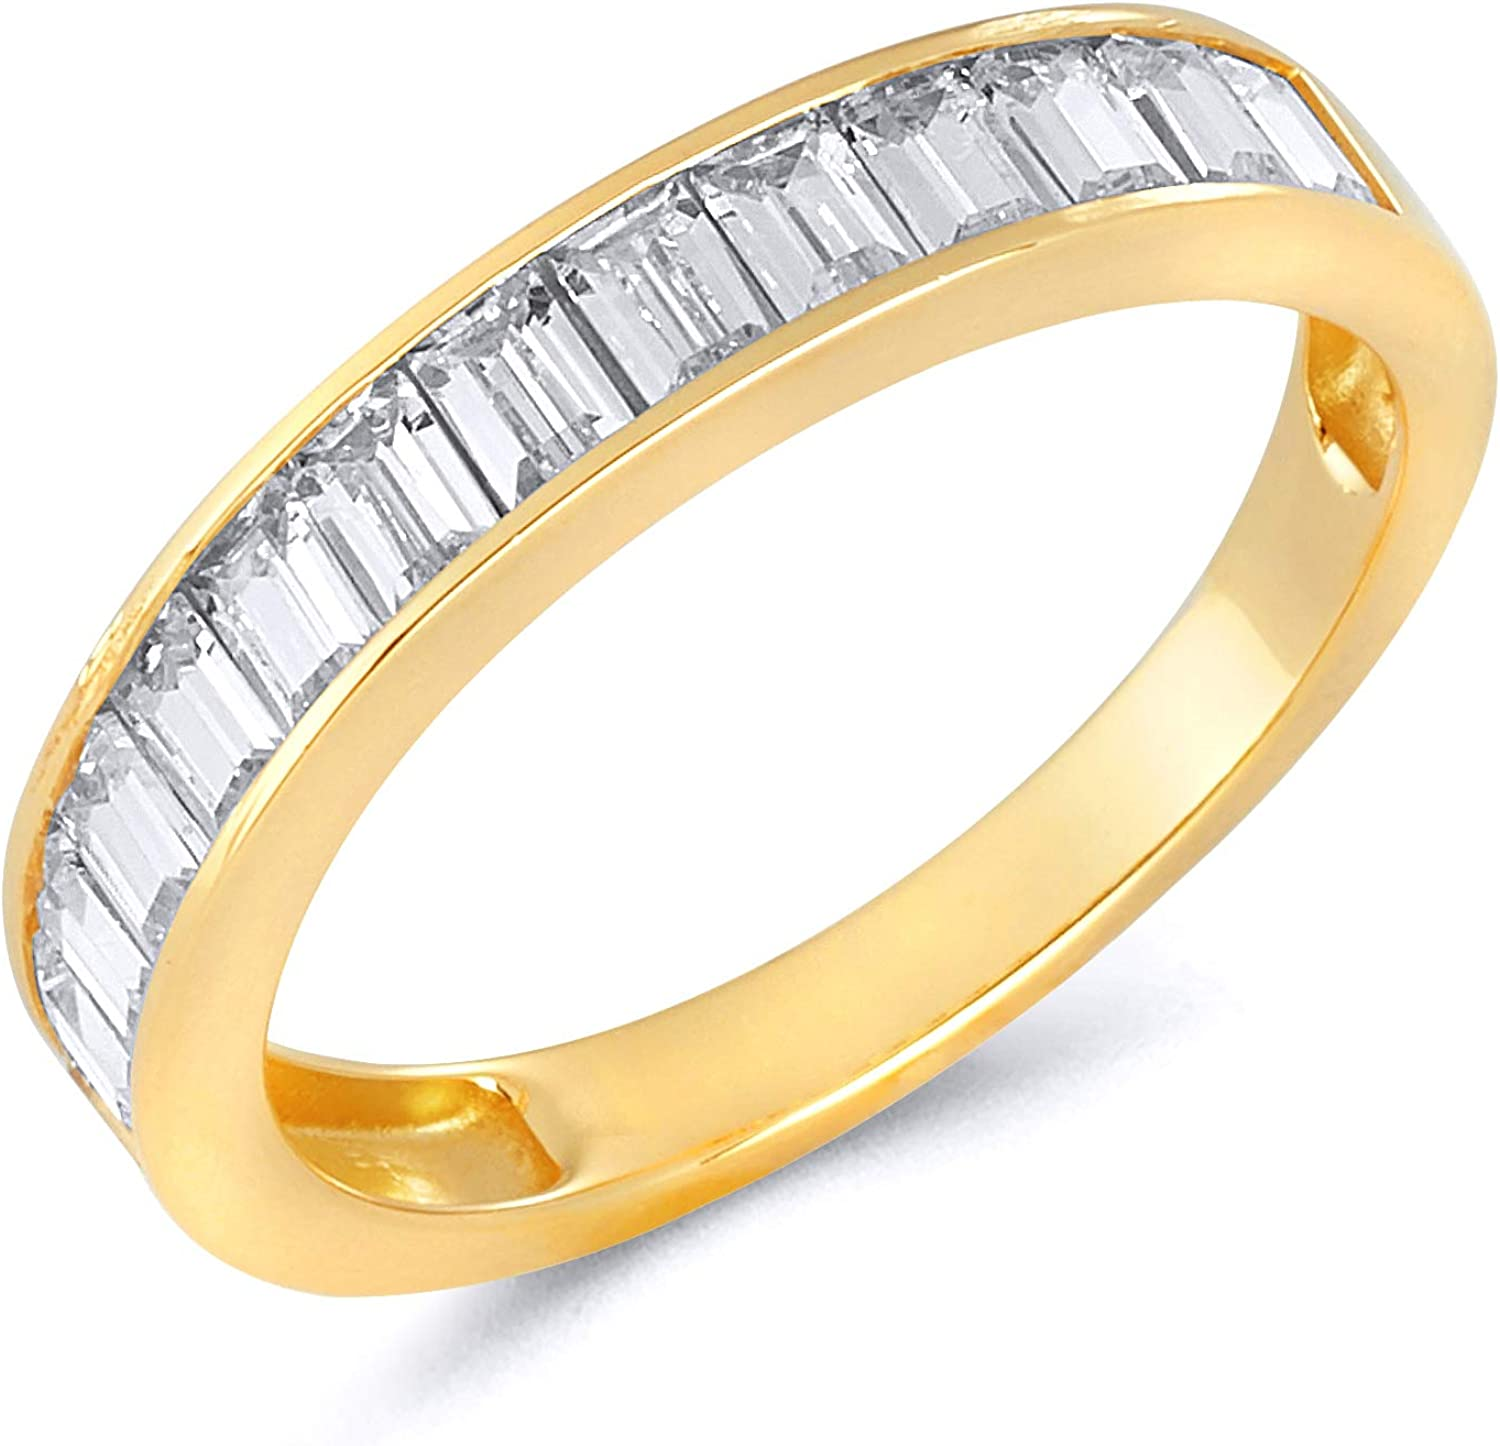 Combination Trendy CZ /& Baguette Band In 925 Sterling Silver10kt Gold14kt Gold Engagement Ring For Christmas